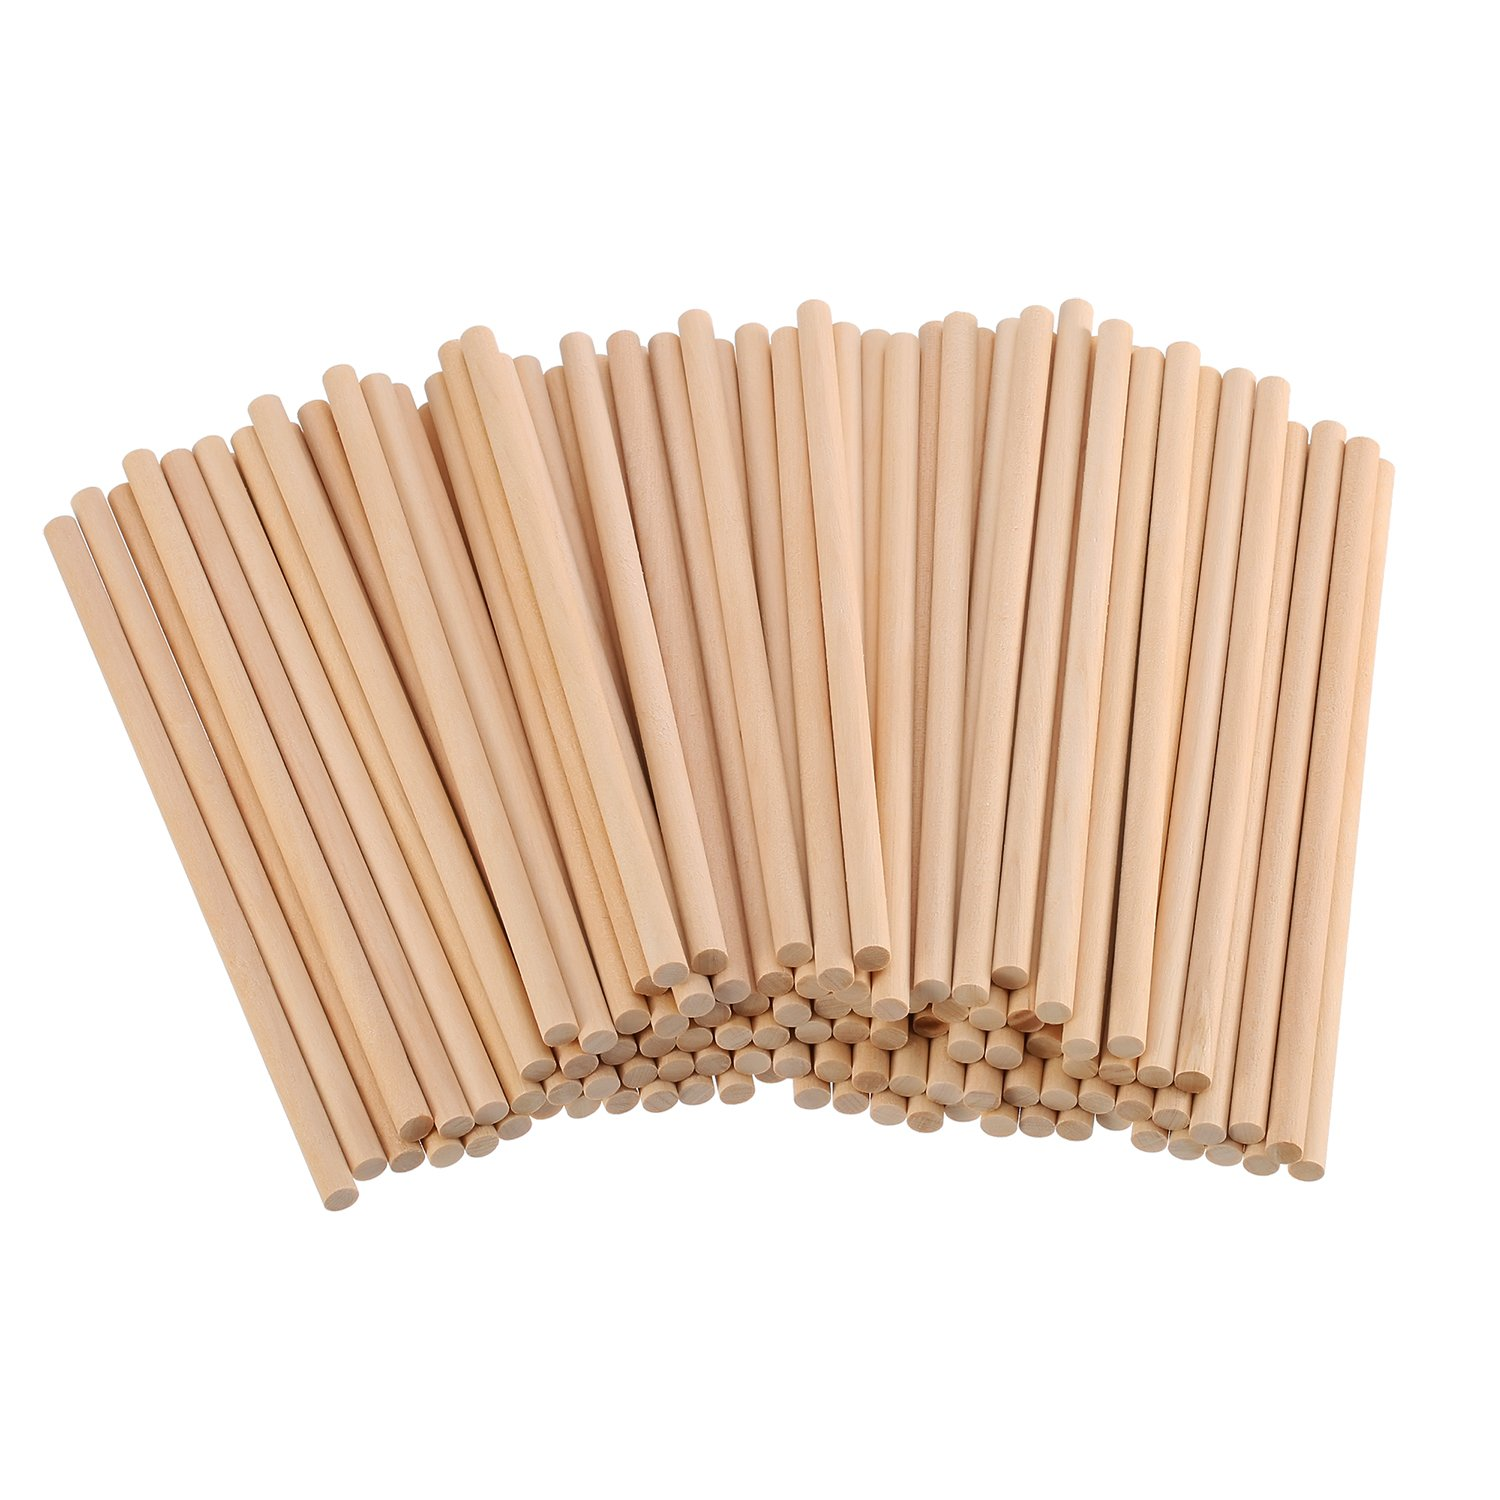 Eboot Unfinished Natural Wood Craft Dowel Rods 100 Pack 6 X 14 Inch